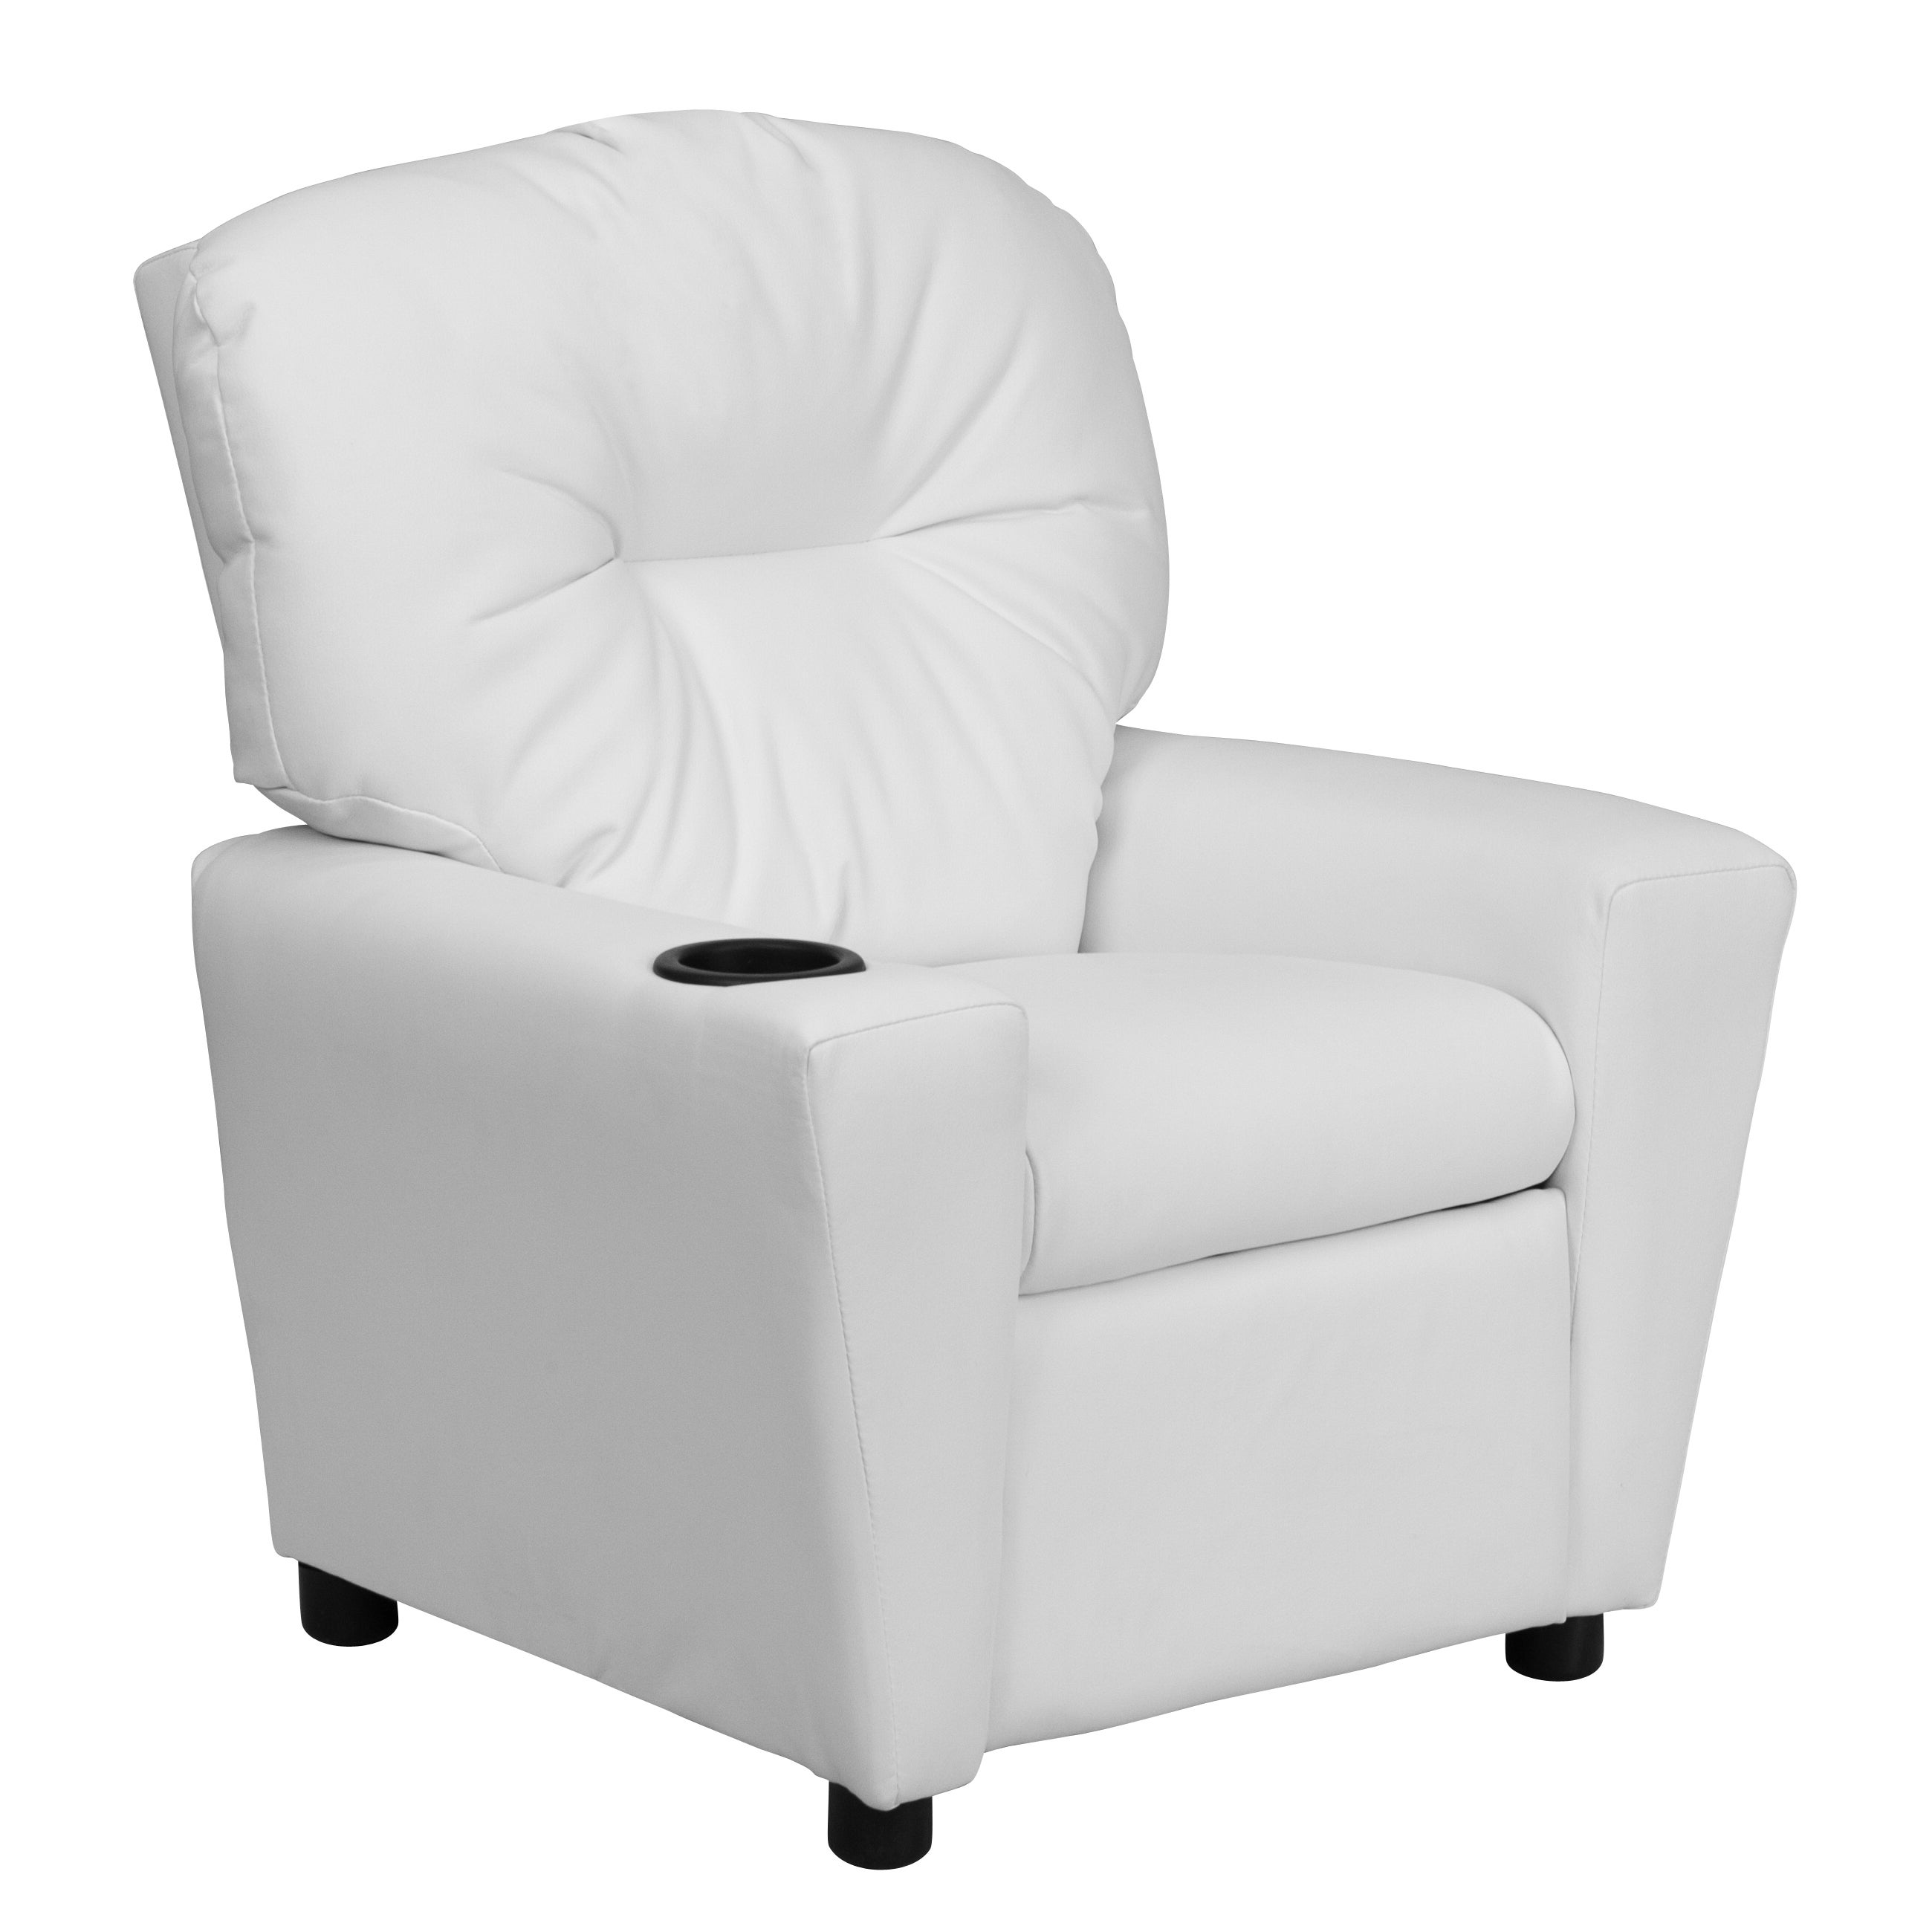 Flash furniture contemporary white vinyl kids recliner for White kids chair